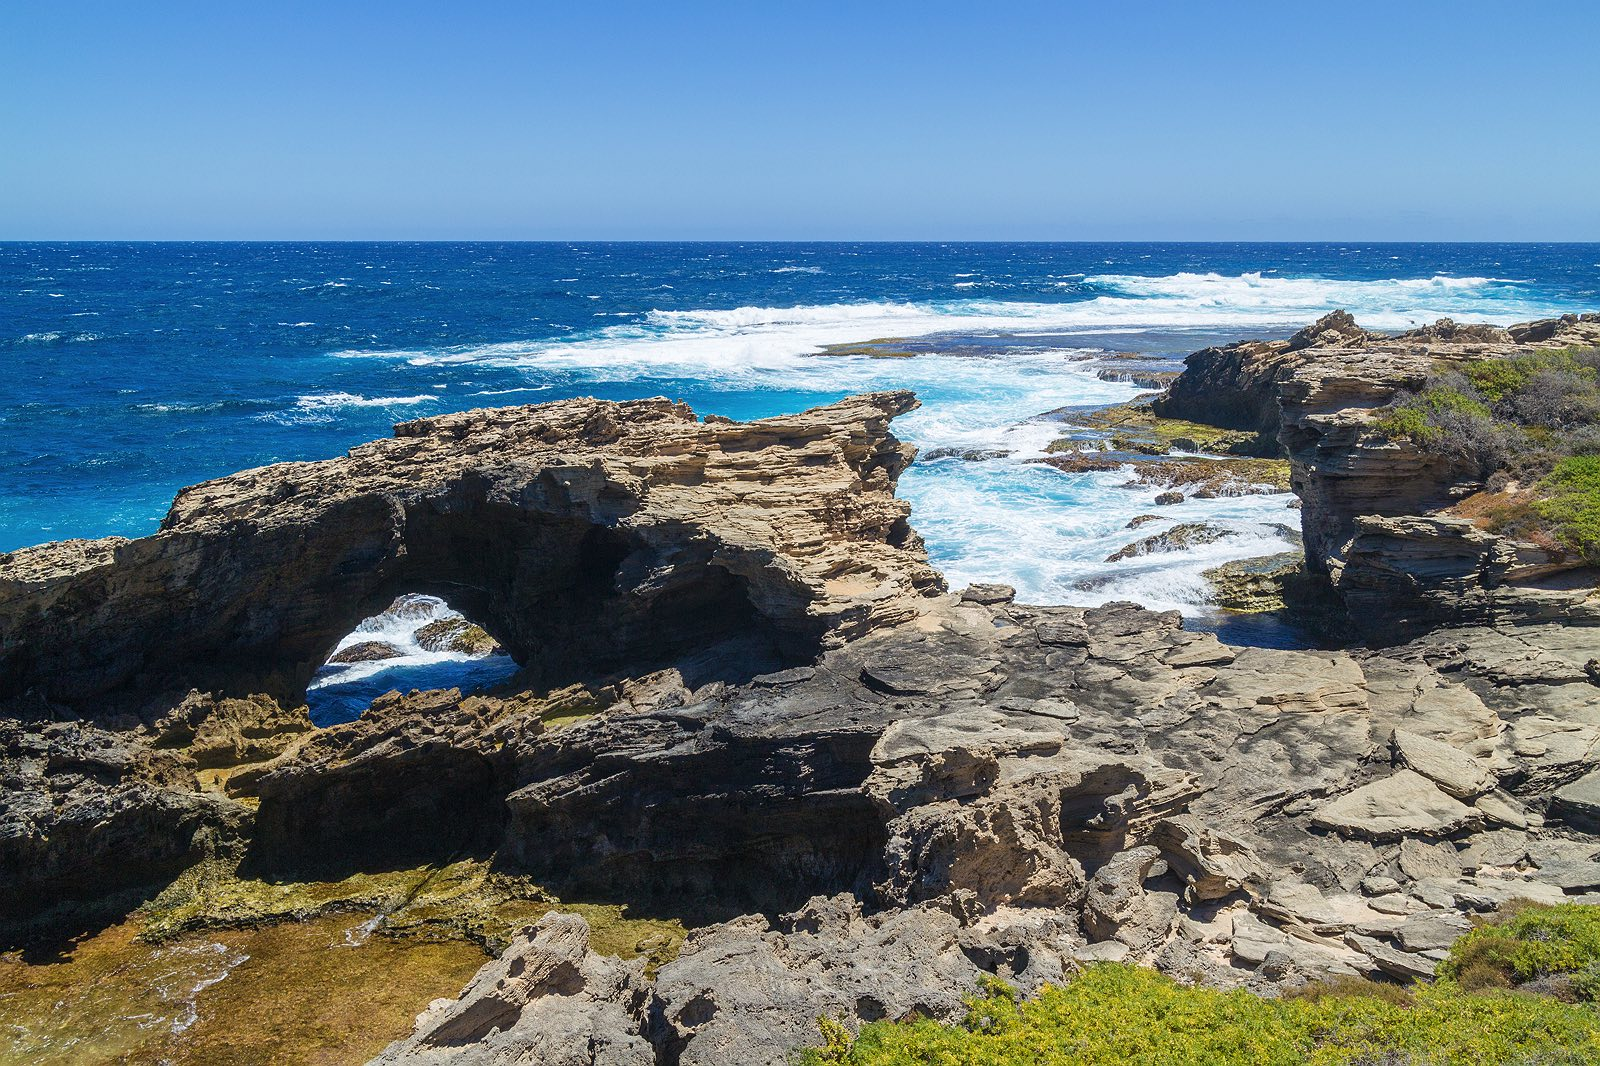 cape-vlamingh-coast-rocks-rottnest